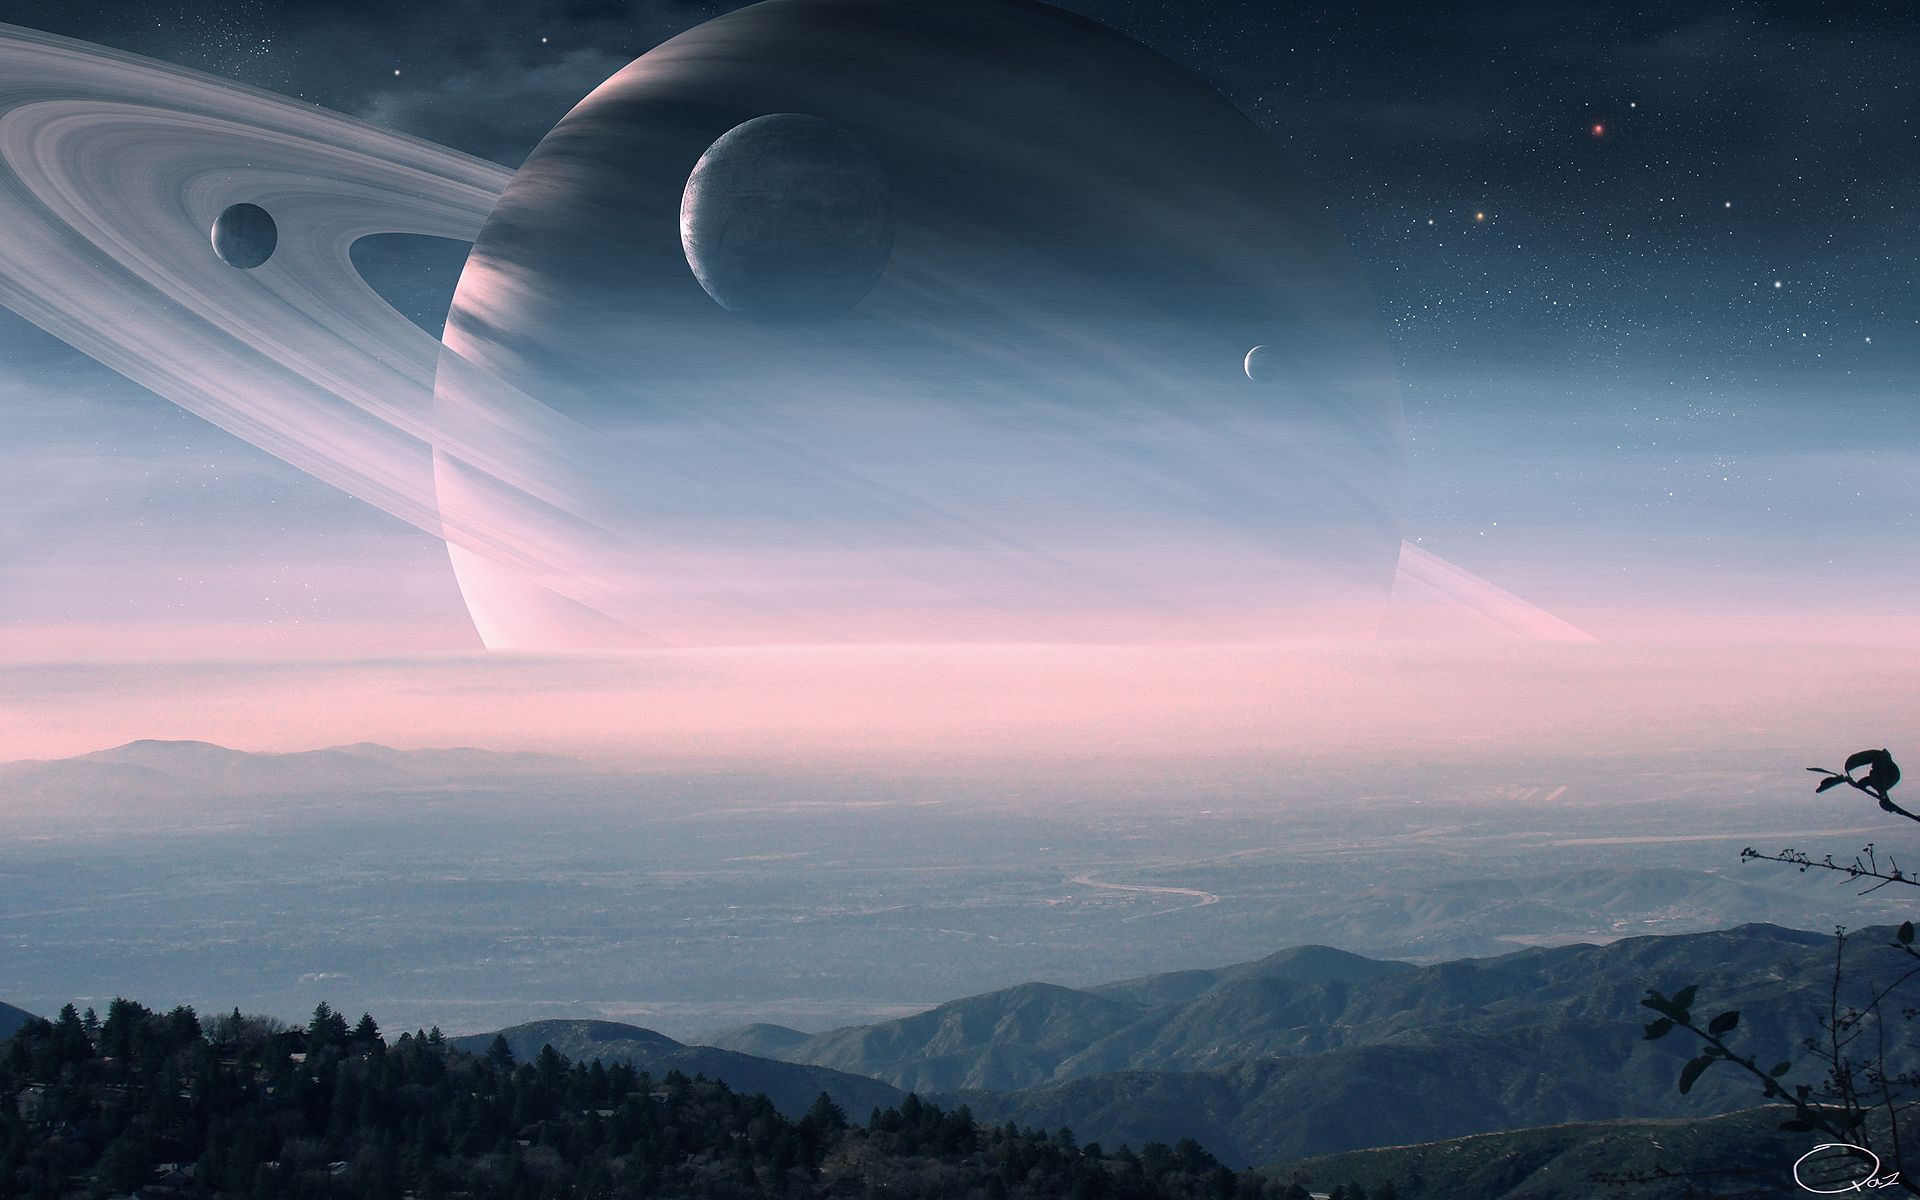 Space Art : Planetary Rings II (Gallery) | Take a Quick Break | Visit our Website for more Pictures